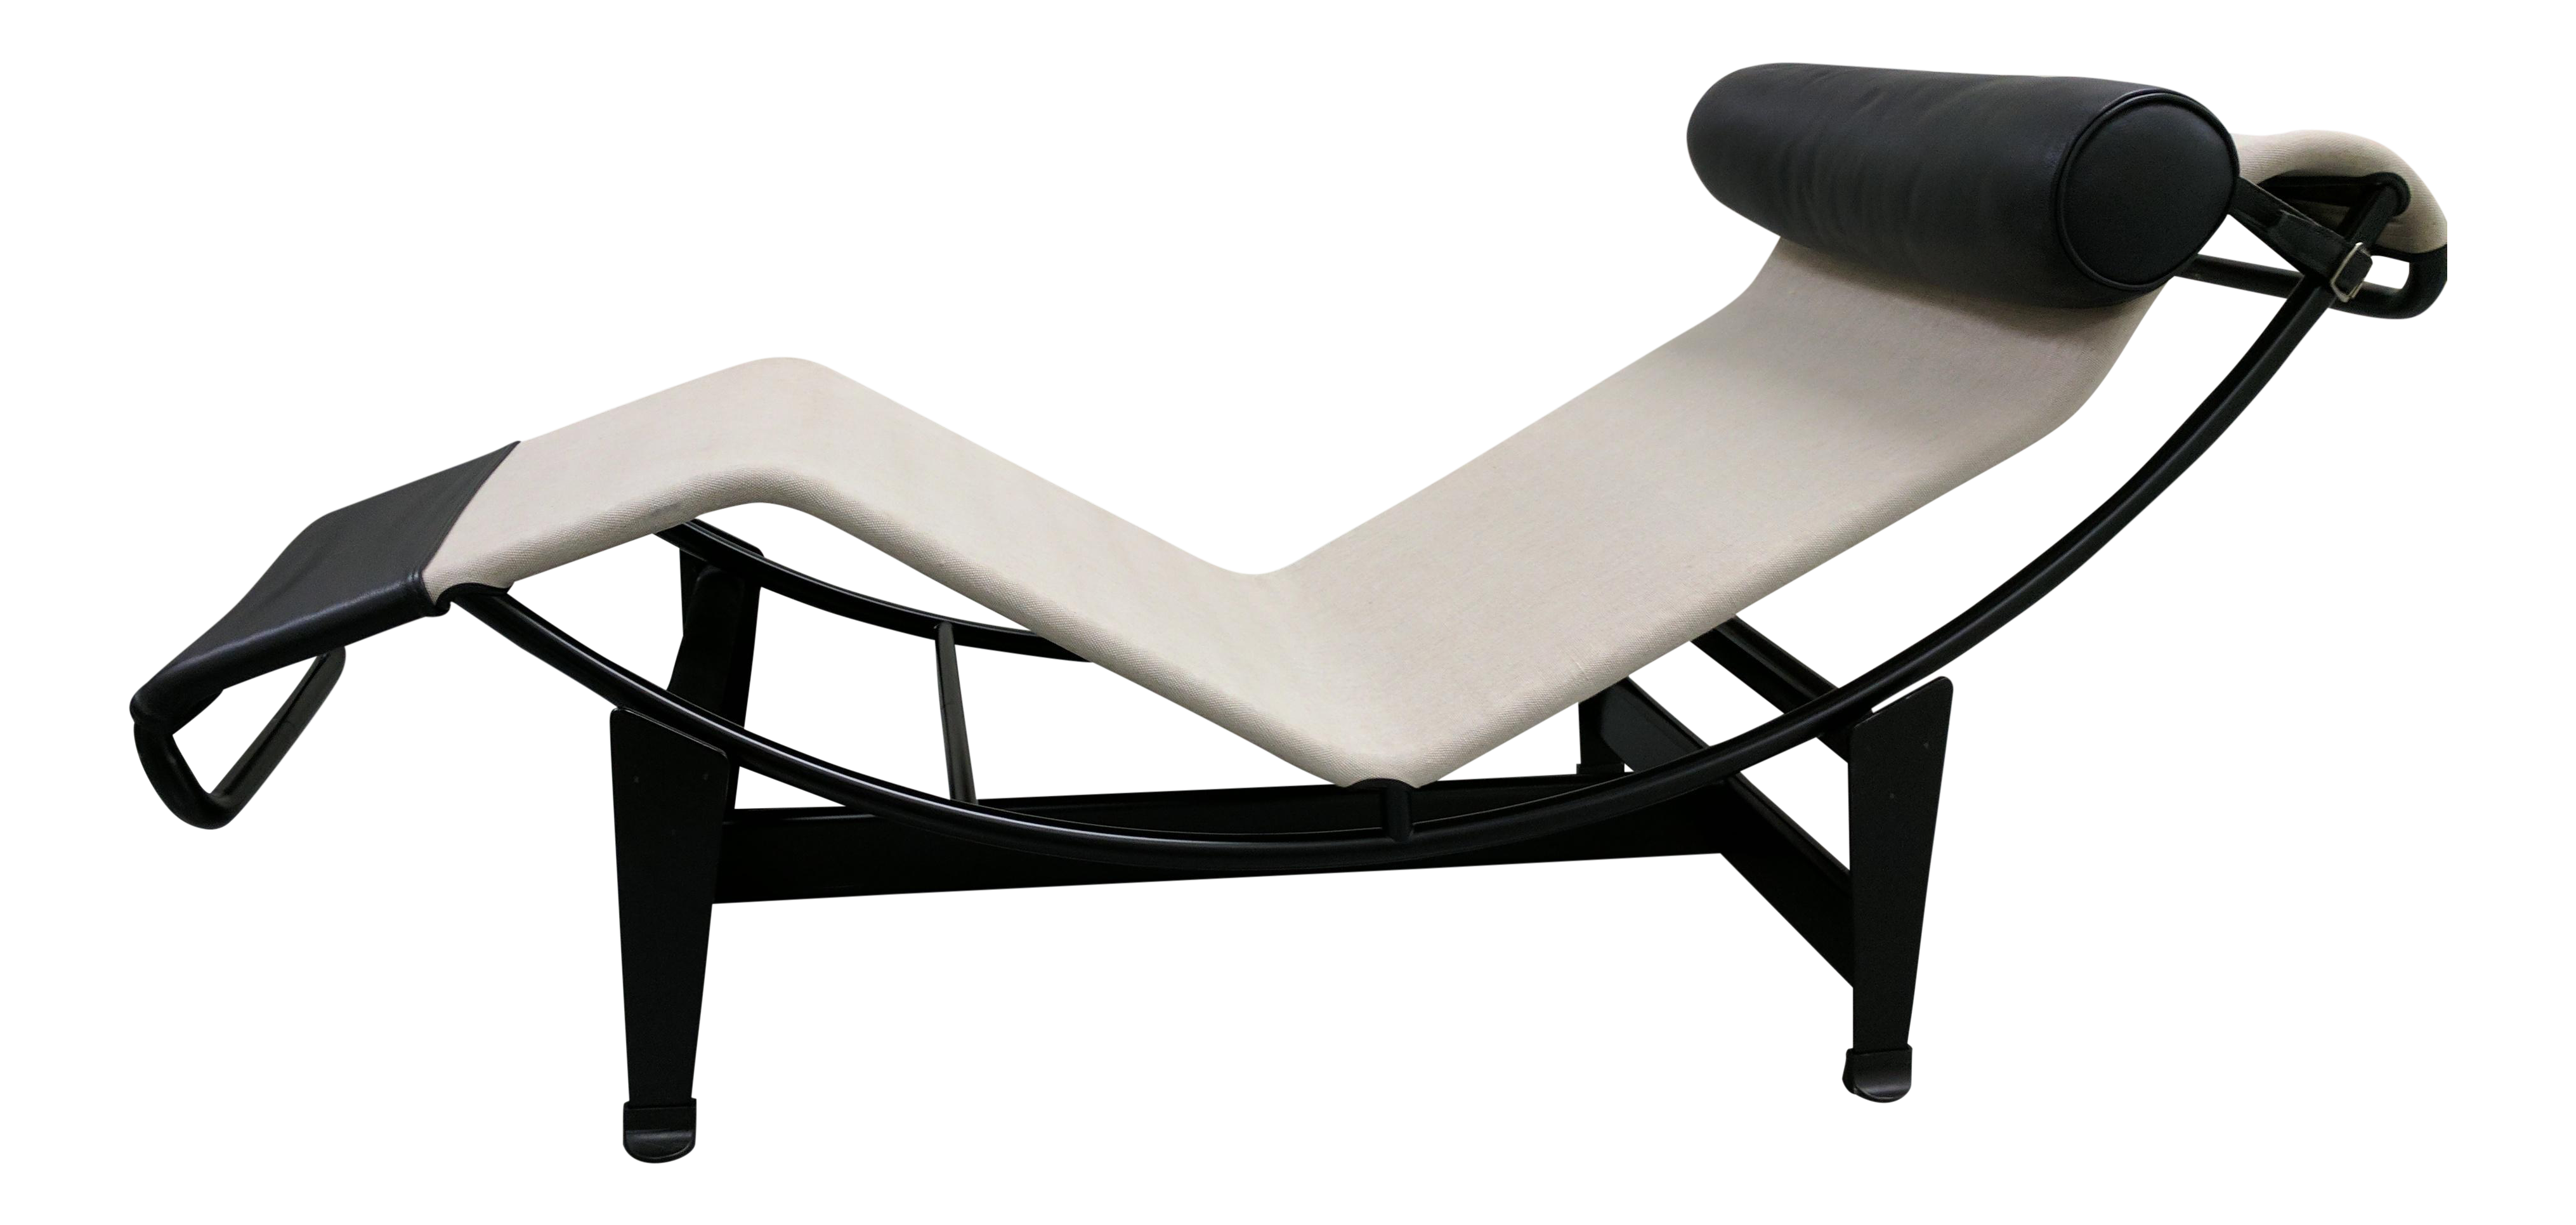 Le corbusier designed lc4 chaise longue chairish for Chaise longue le corbusier ebay